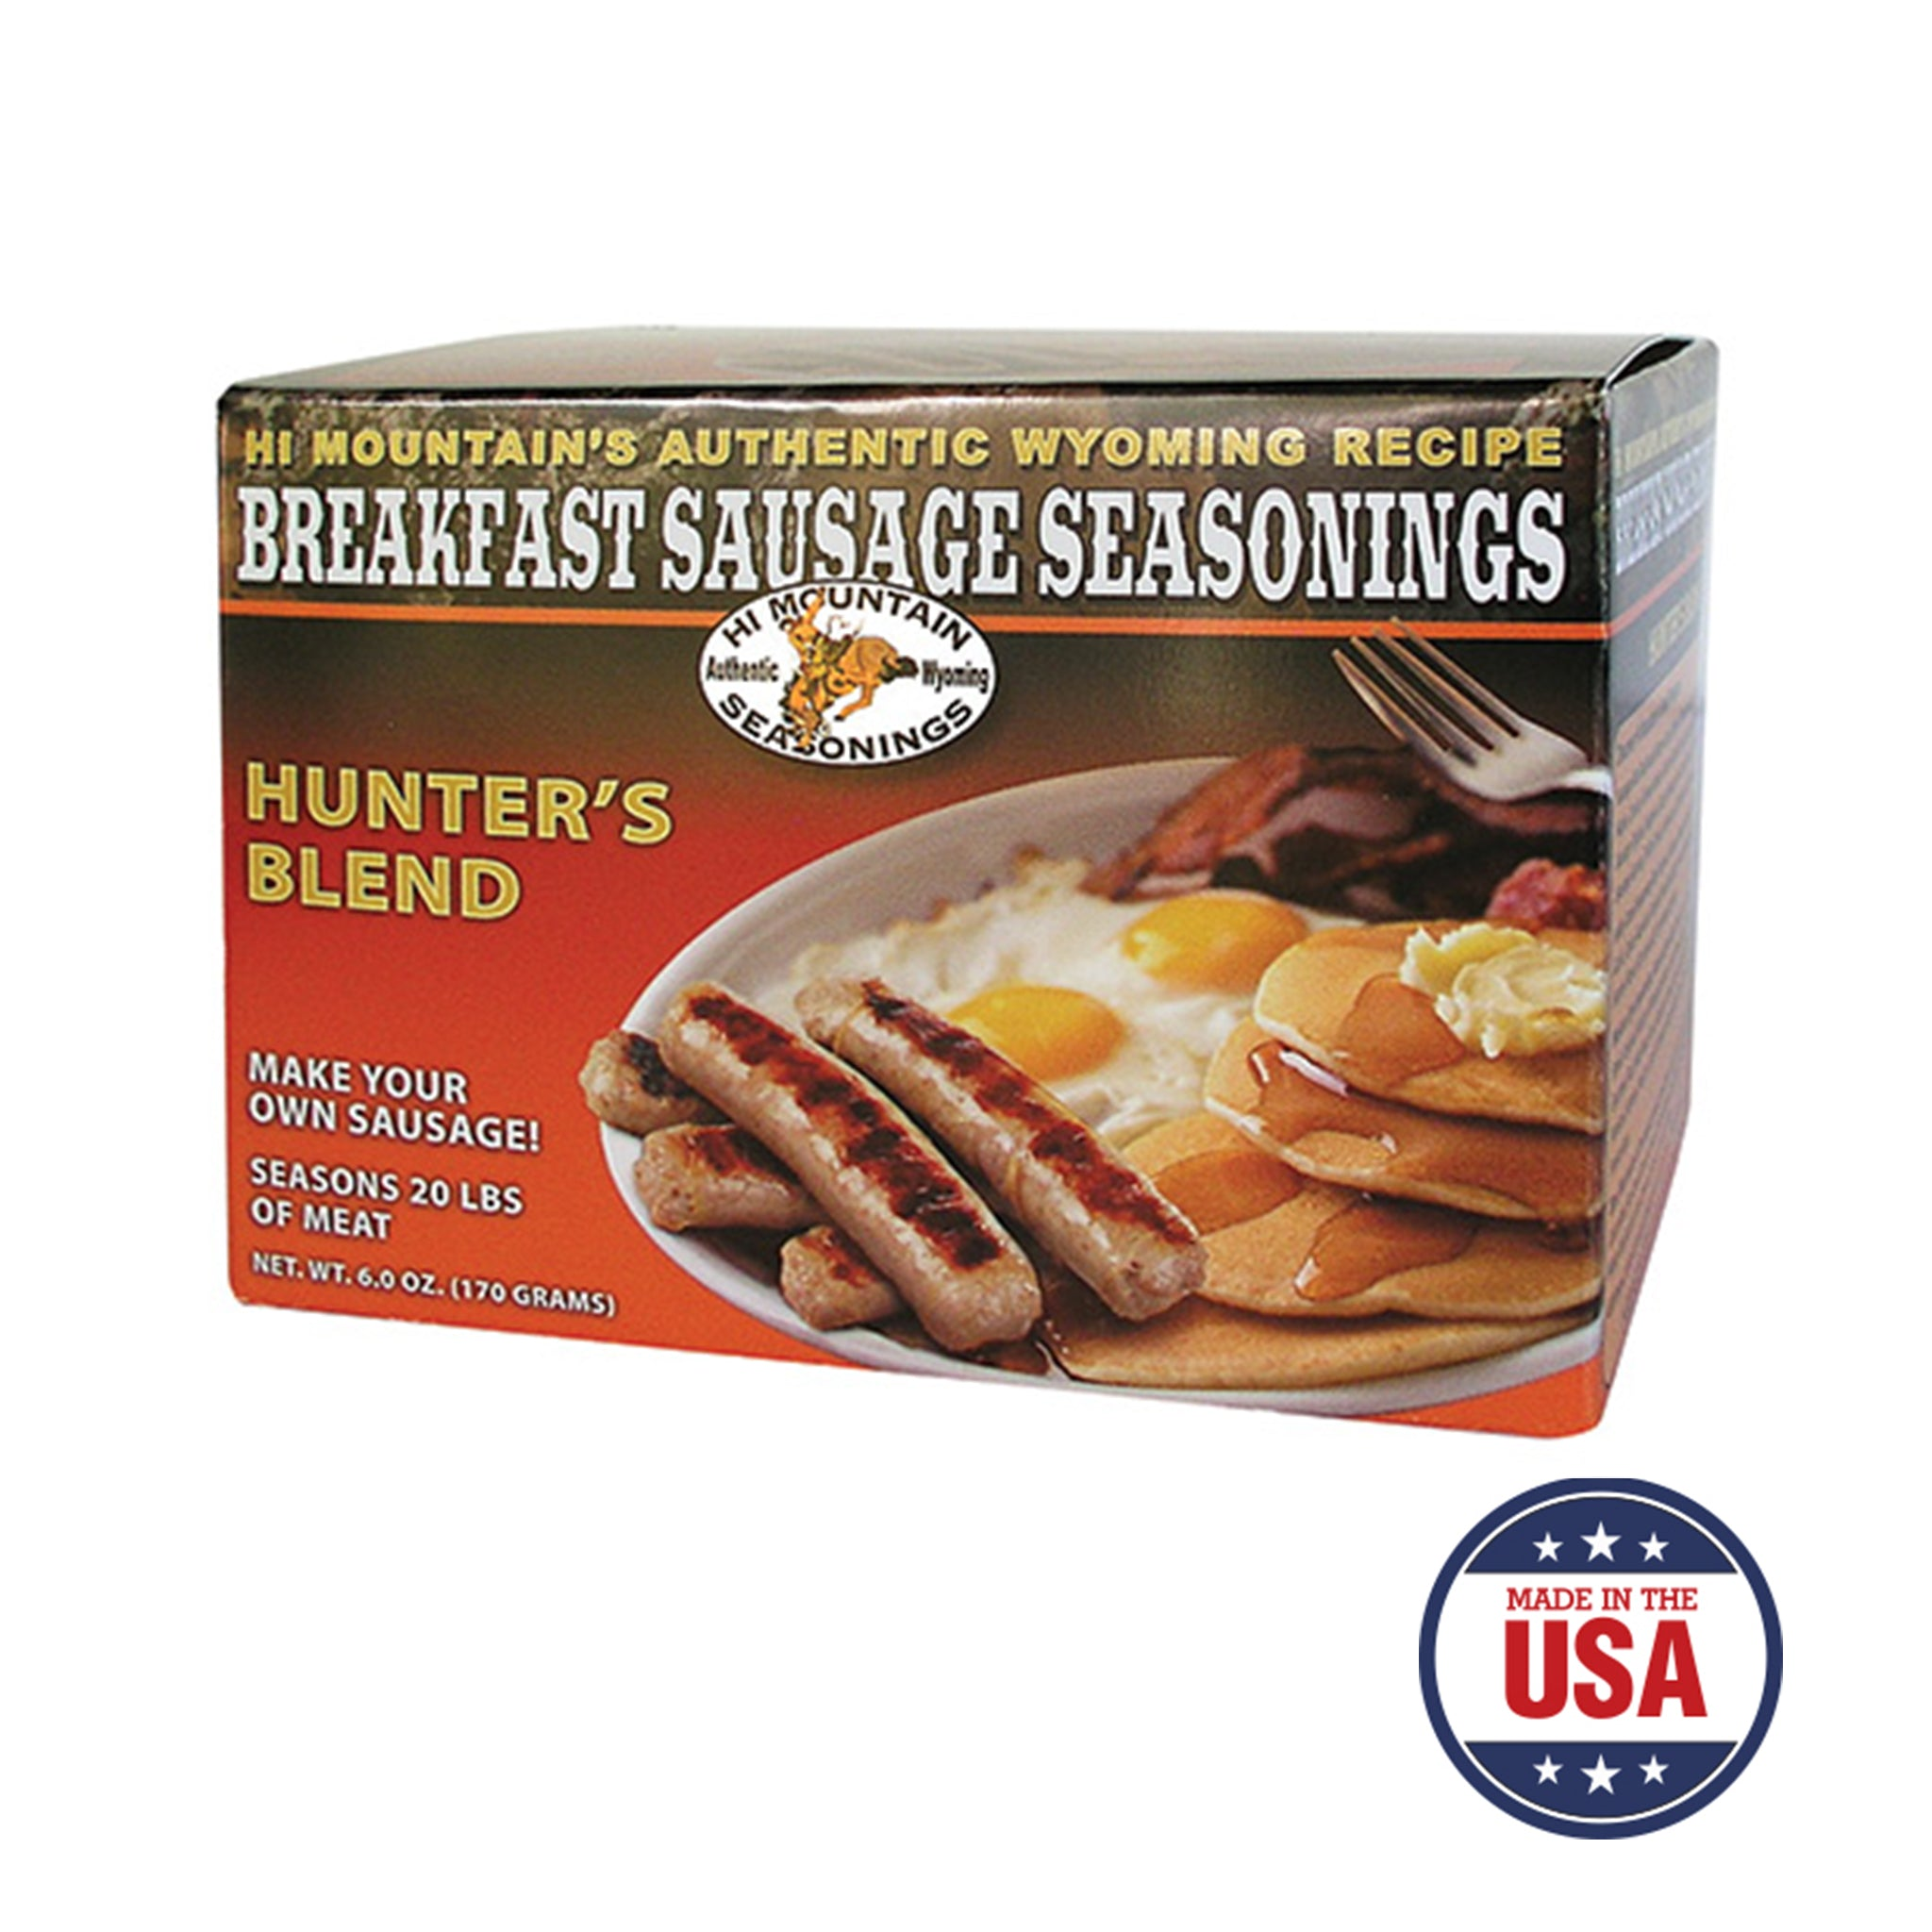 Hunter's Blend Breakfast Sausage Making Kit